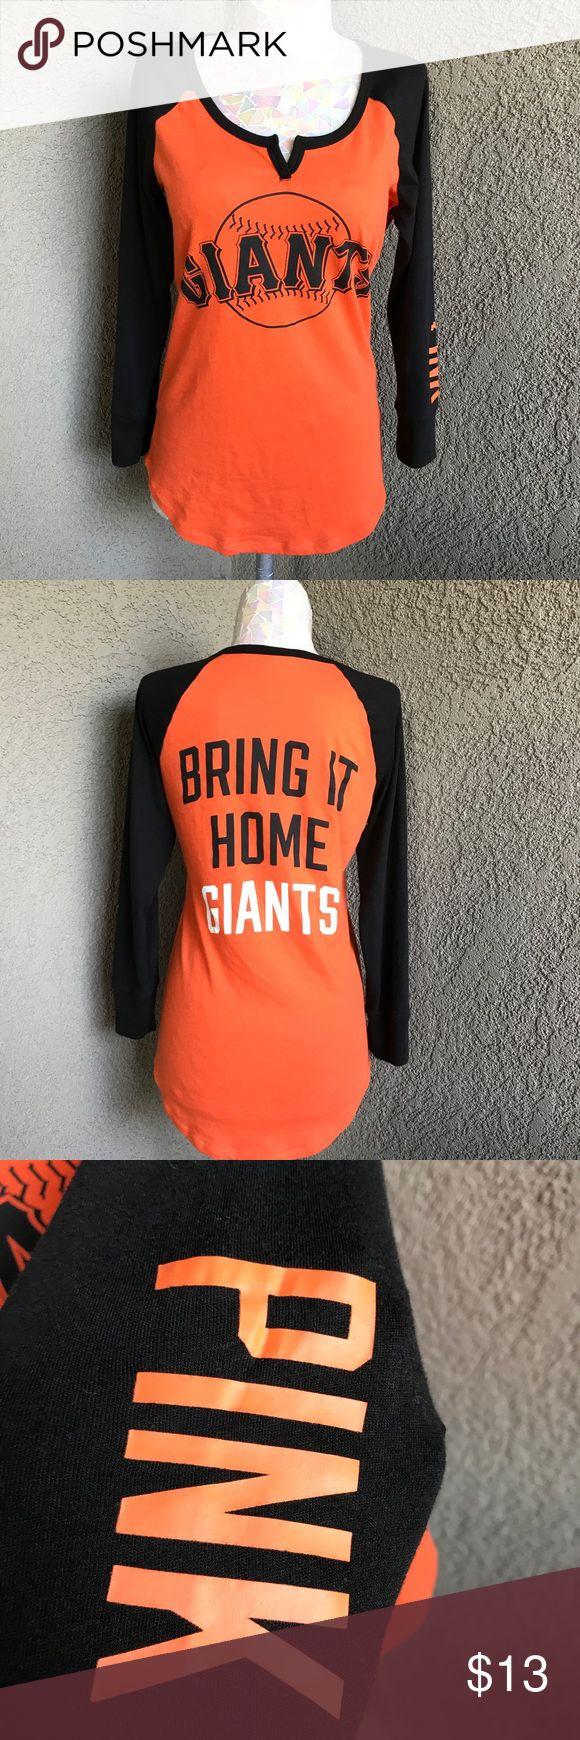 VS Pink SF Giants Top Pre-owned wore handful of times, still has lots of life left. See pictures All items are honestly presented to the best of my knowledge, and are stored in a non-smoking environment. Item is in great condition unless noted. No returns  Please view listing pictures & additional questions are always welcomed. PINK Victoria's Secret Tops